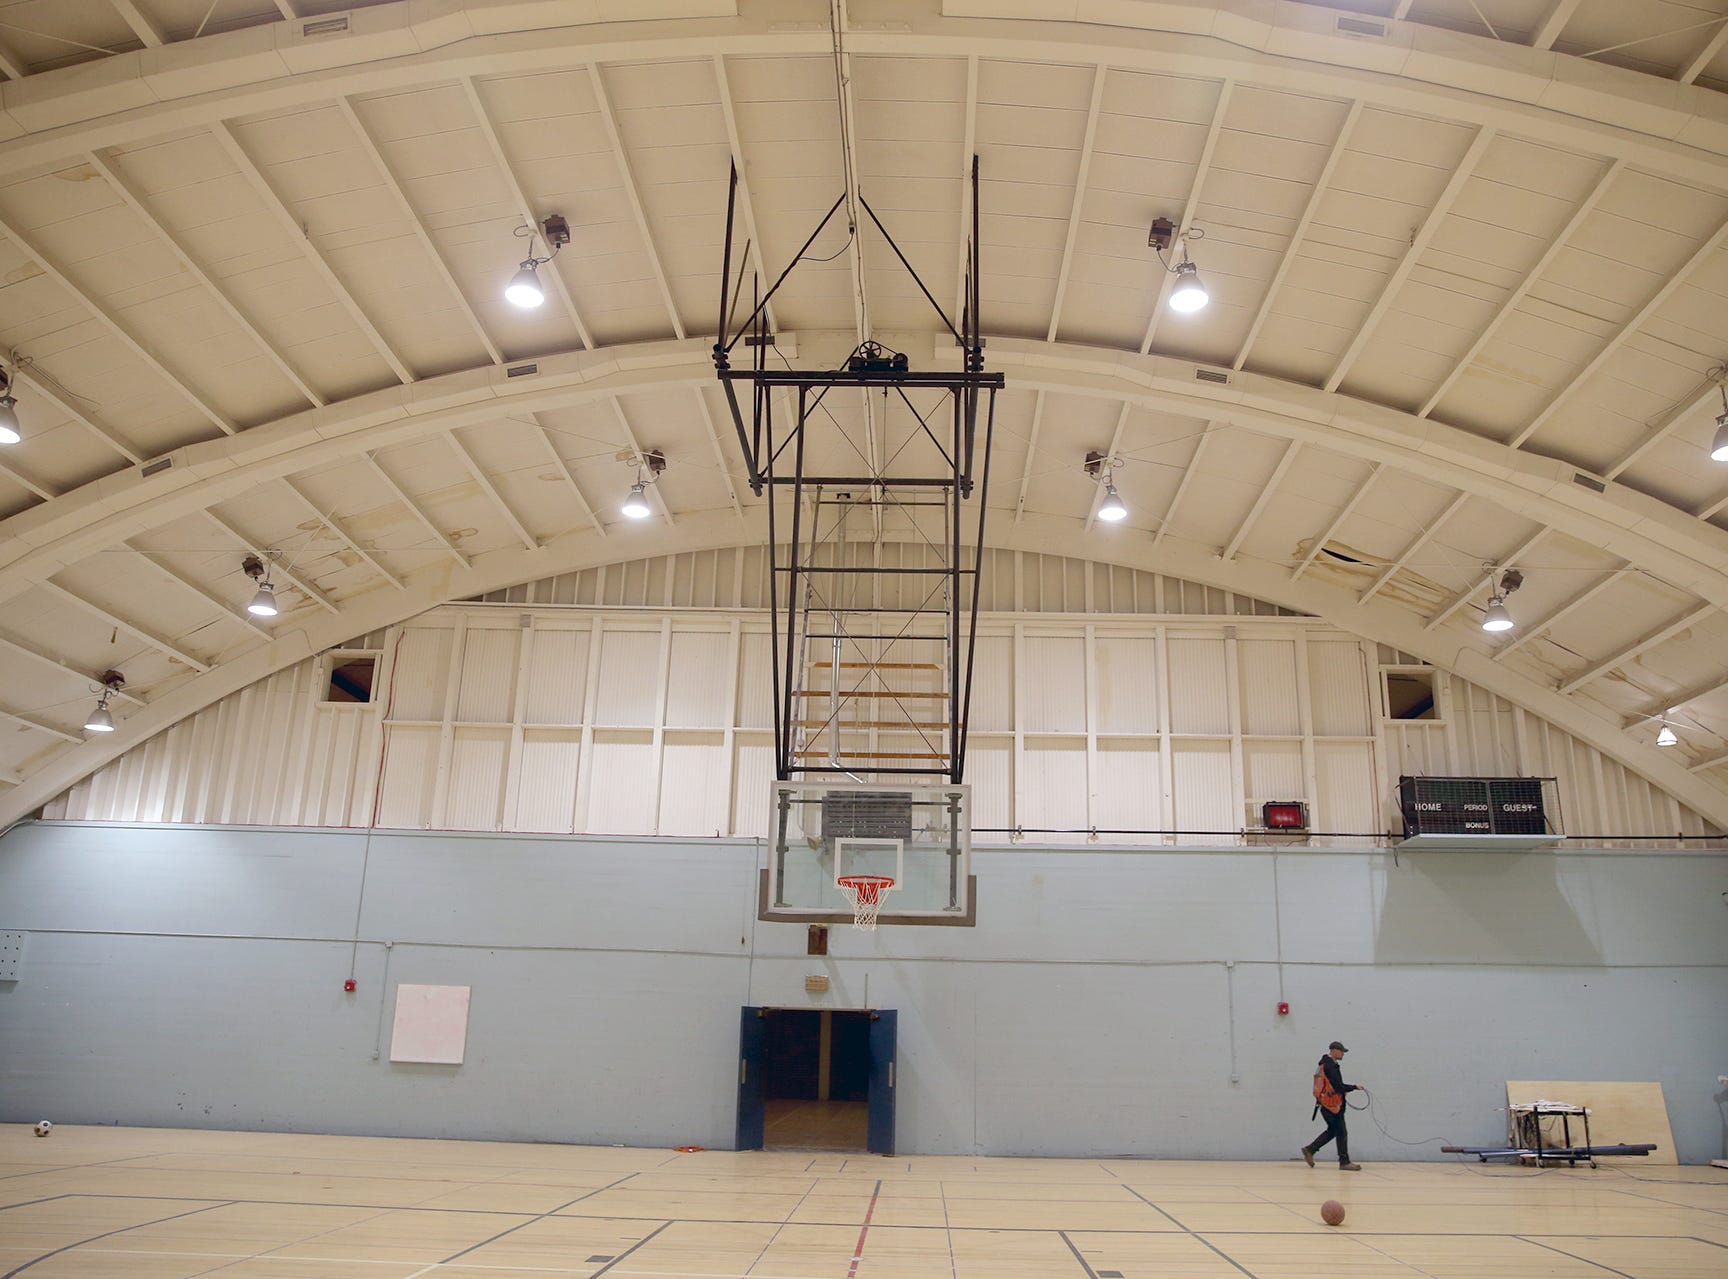 The old curved roof with new lighting inside the old East High basketball court  in the  the old gymnasium,.